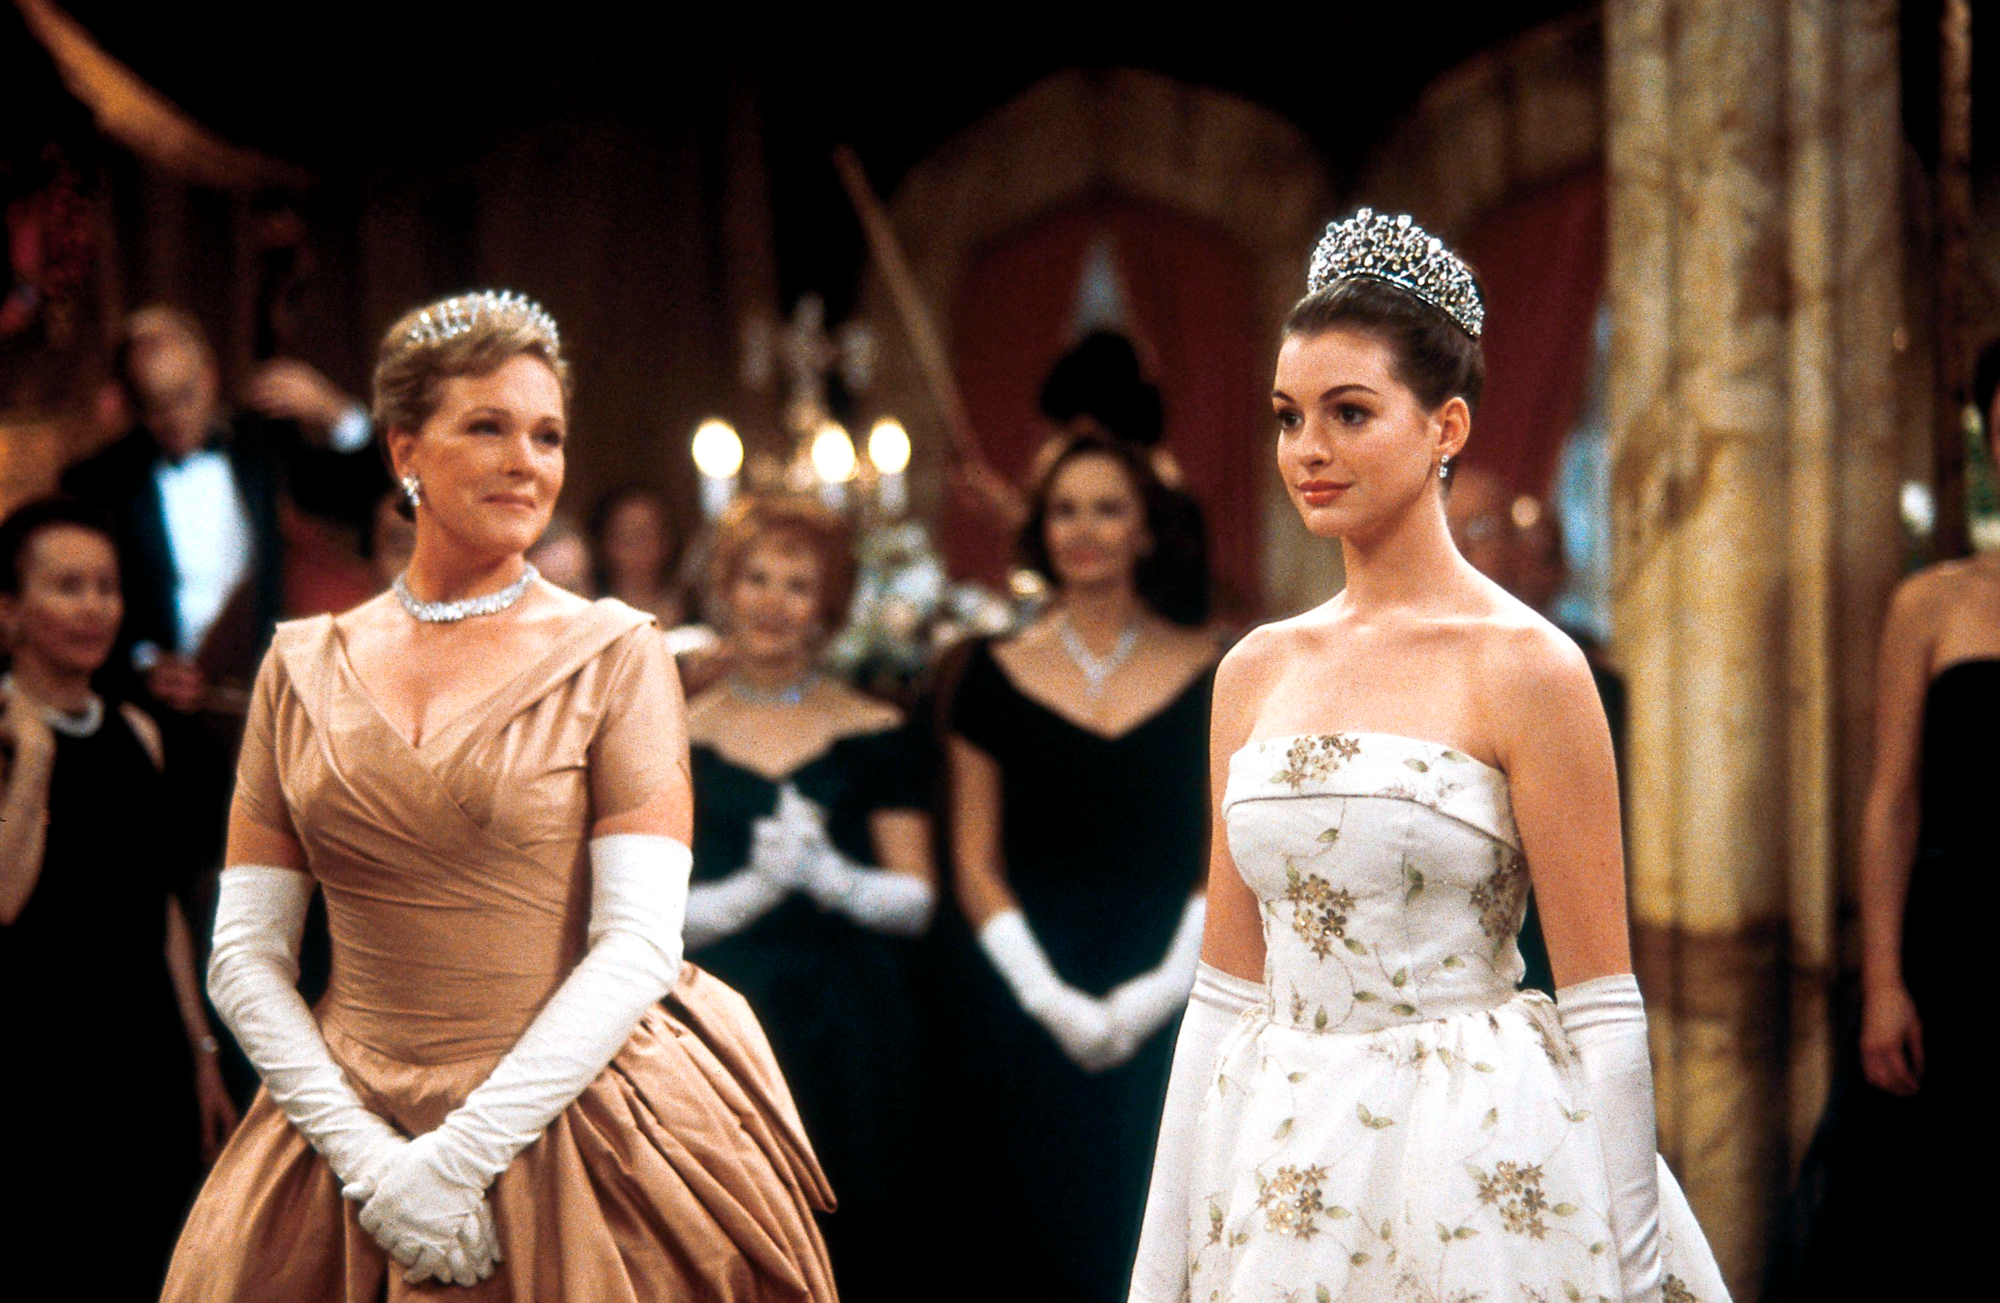 Original Film Title: THE PRINCESS DIARIES.  English Title: THE PRINCESS DIARIES.  Film Director: GARRY MARSHALL.  Year: 2001.  Stars: JULIE ANDREWS; ANNE HATHAWAY. Credit: WALT DISNEY PRODUCTIONS / Album